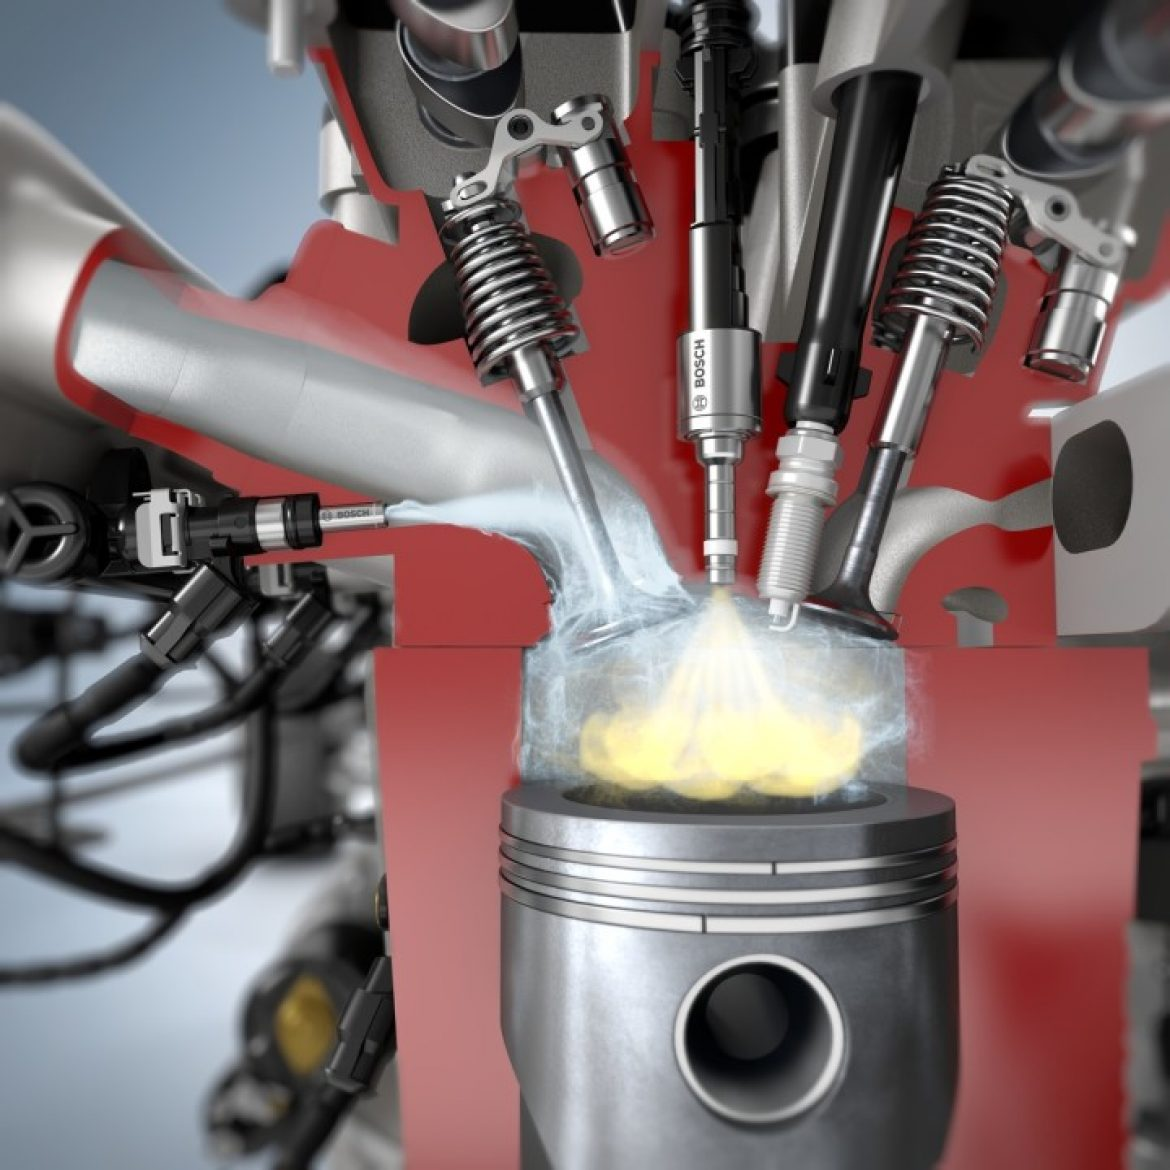 Bosch water injection innovation reduces fuel consumption by up to 13 percent